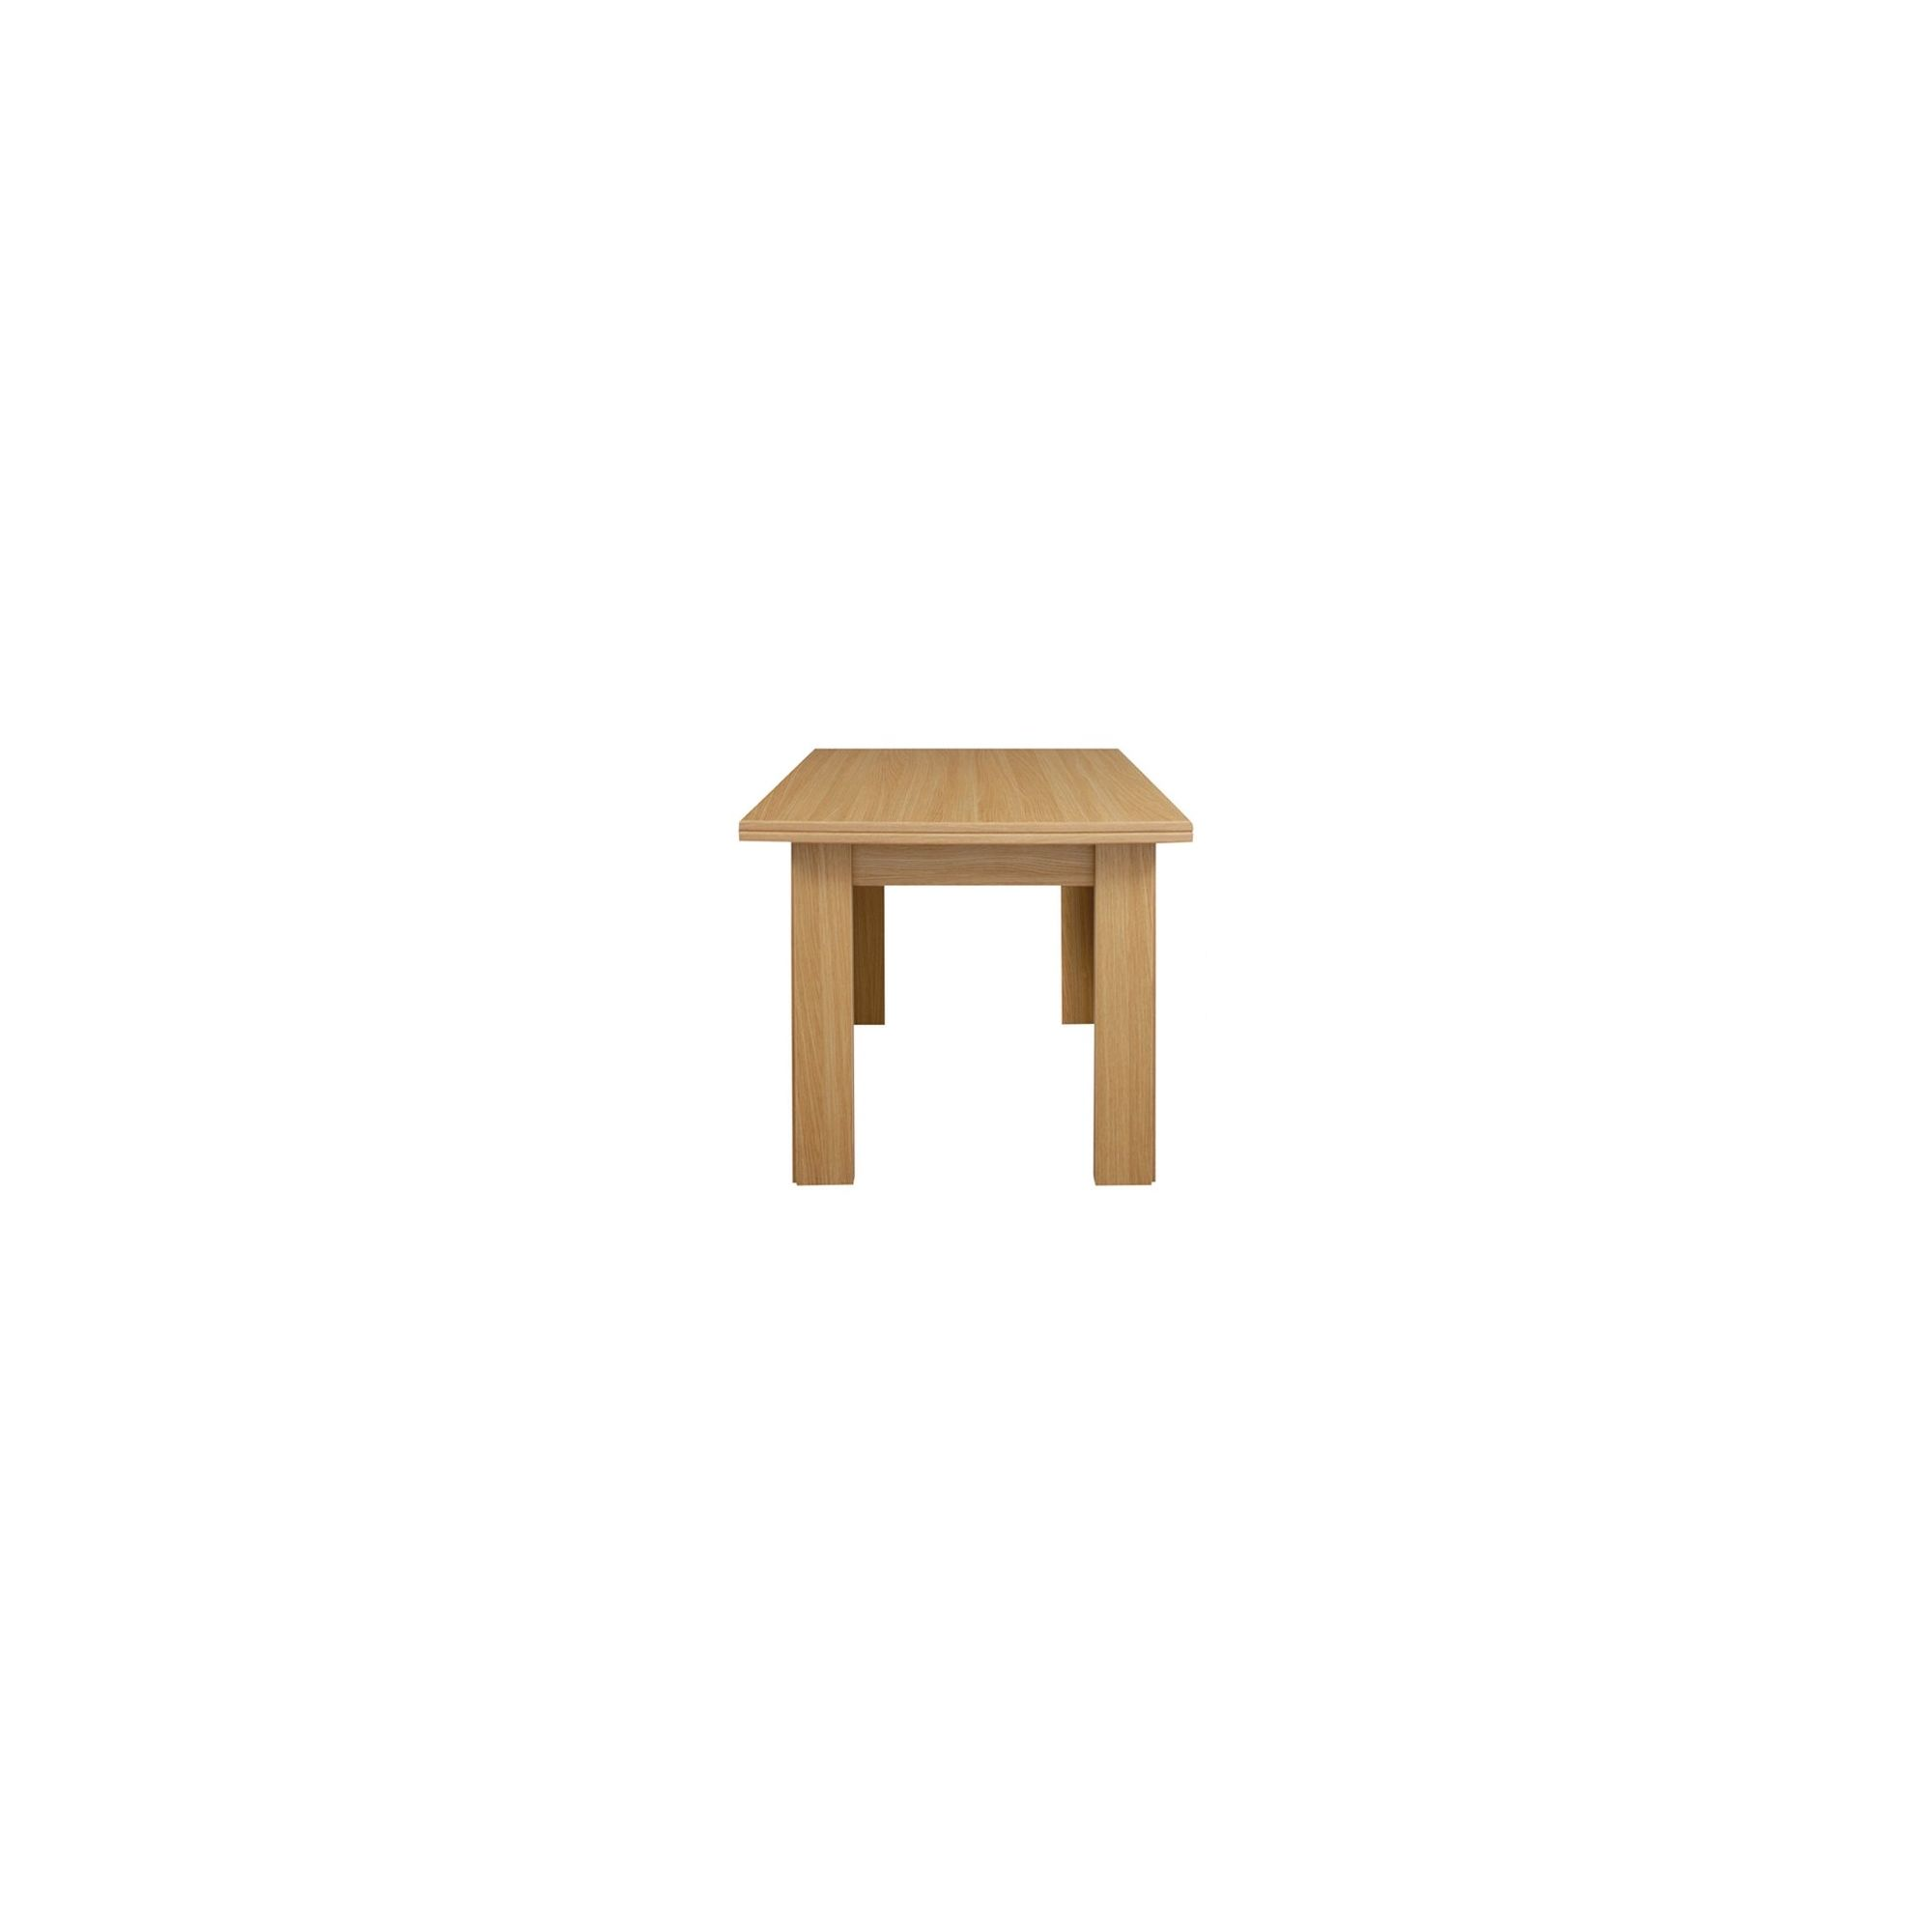 Other Caxton Sherwood Butterfly Extending Dining Table in Natural Oak - 92-184cm